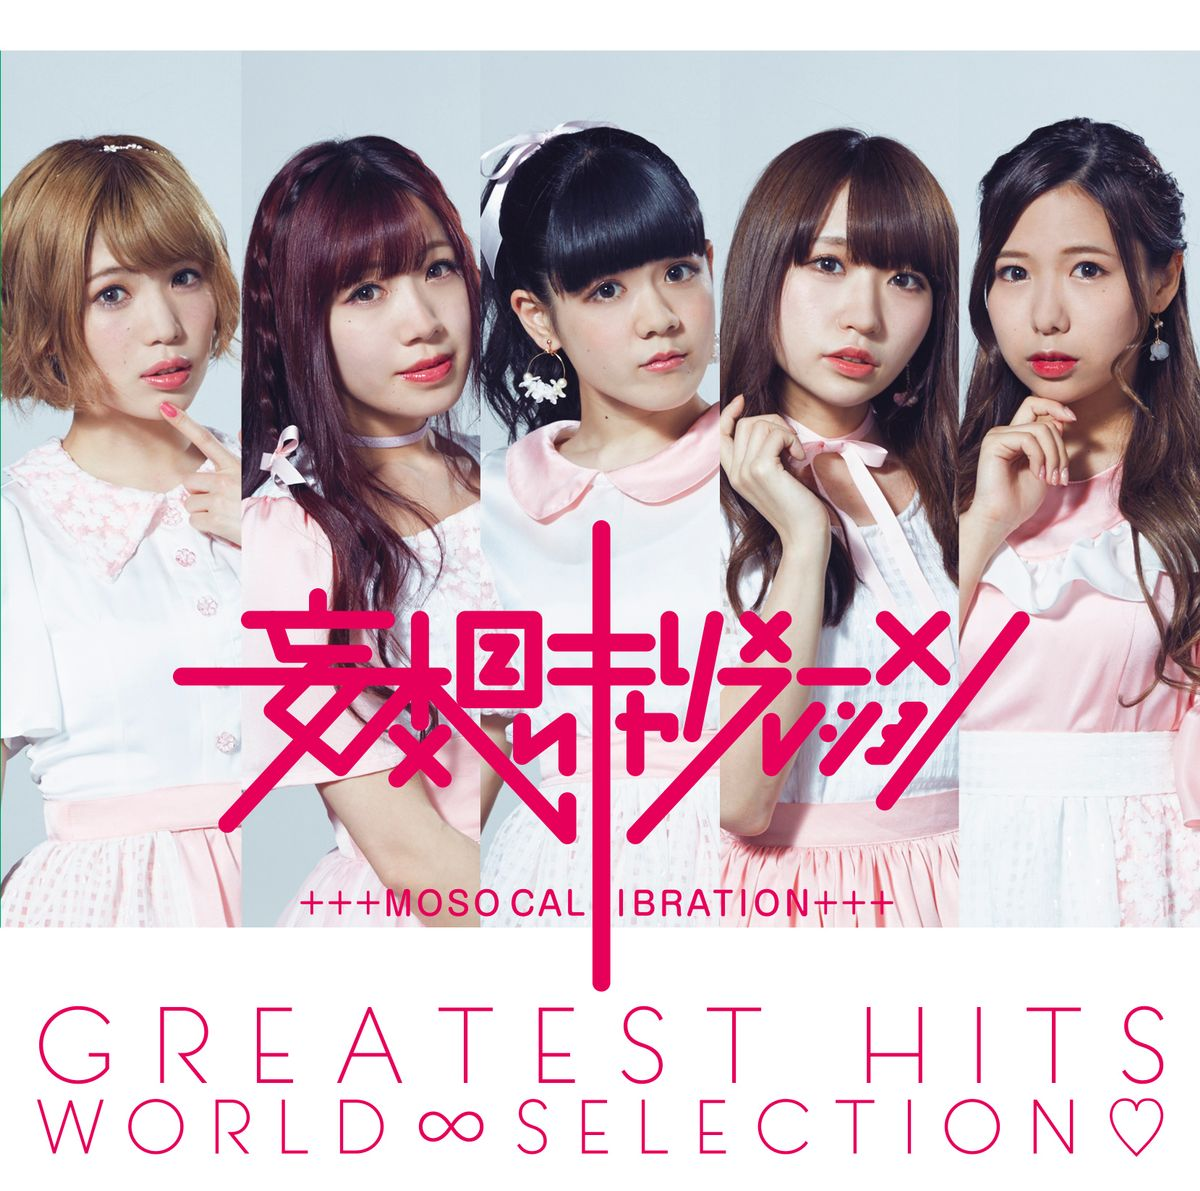 NekoPOP-Moso-Calibration-JPU-Greatest-Hits-World-1